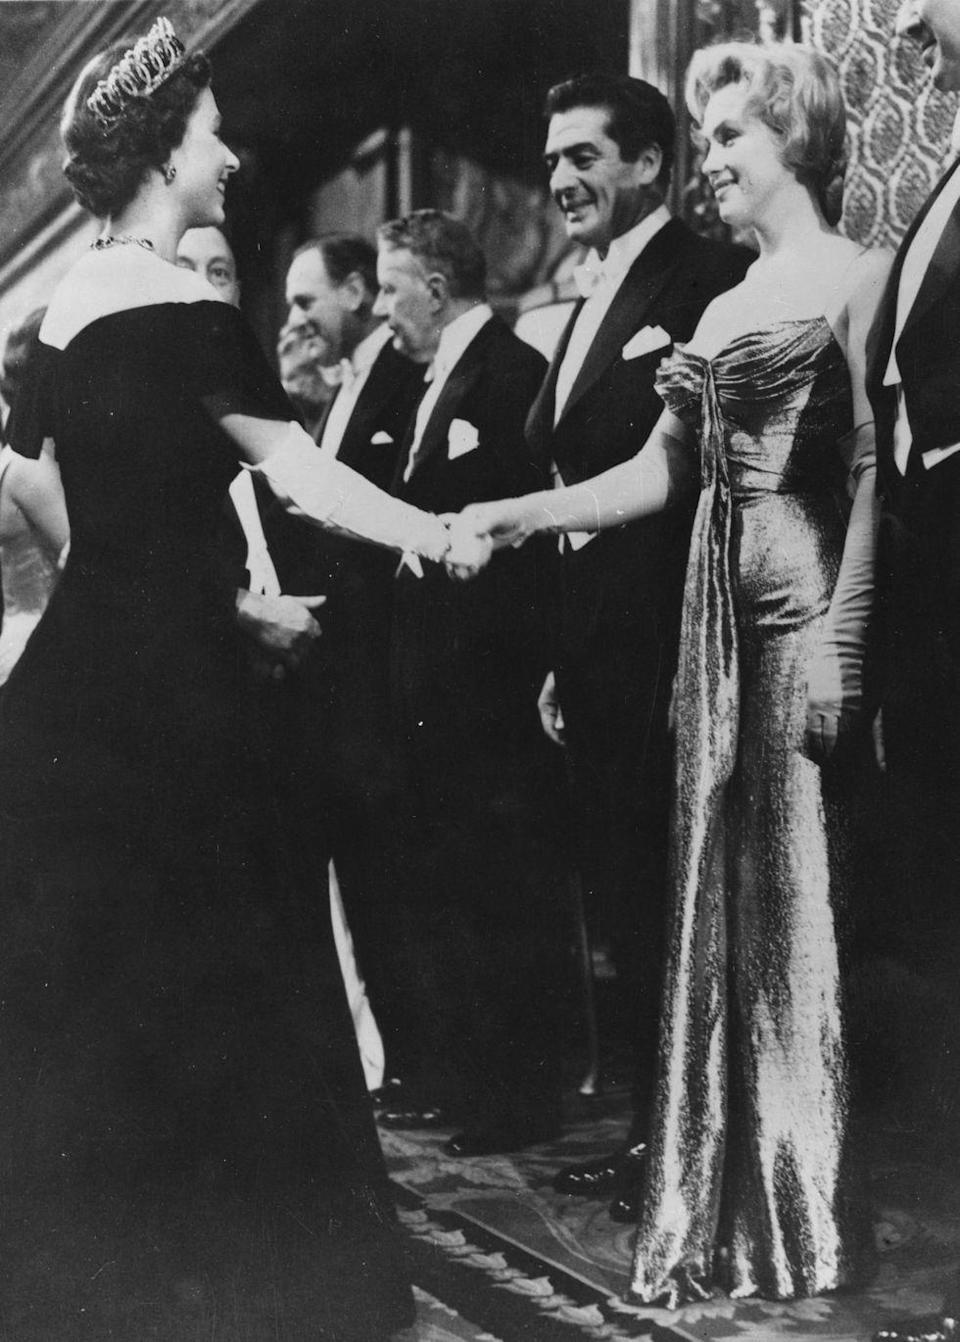 <p>For her royal moment, Marilyn opted for a strapless gown with elbow-high silk gloves. Sexy, of course, but tasteful too.</p>